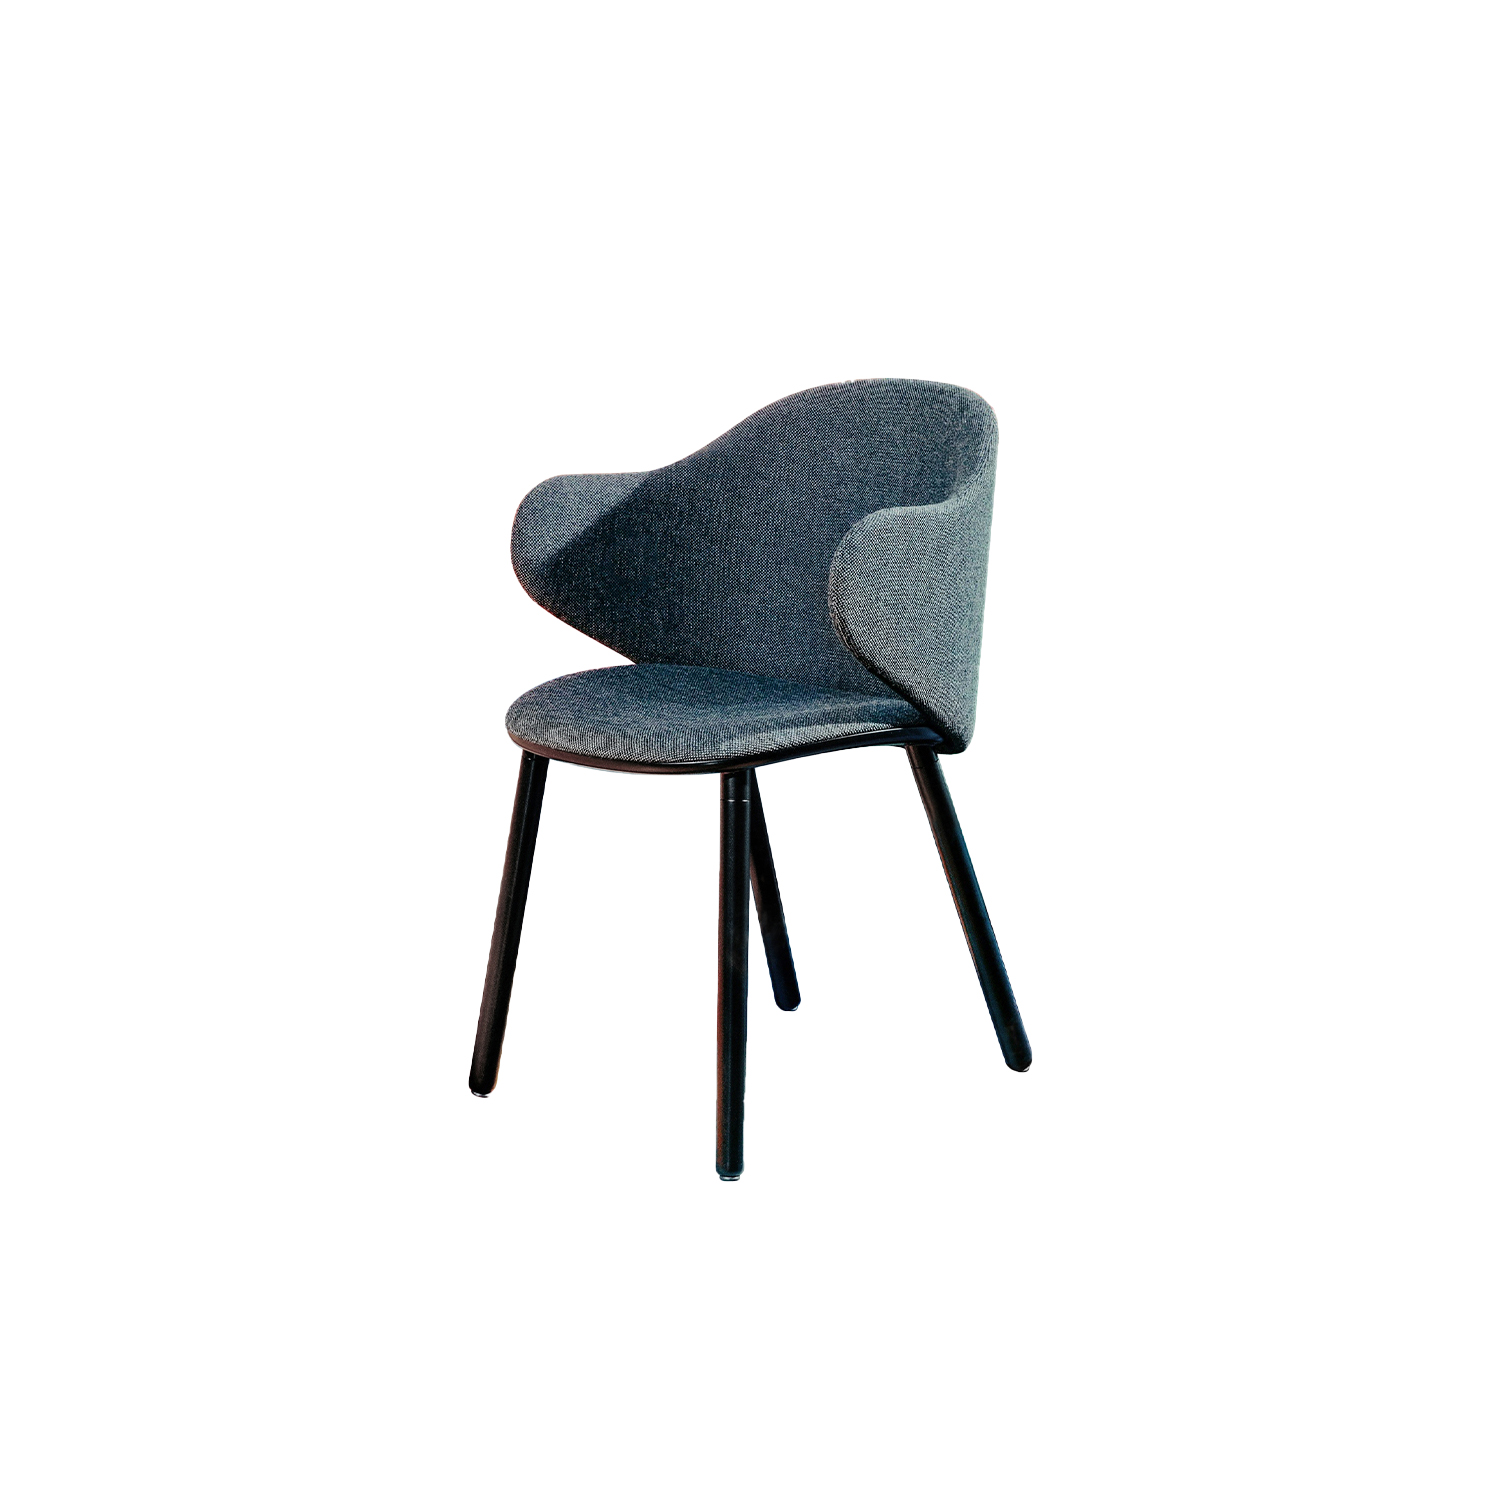 Dua Armchair with Four Legs - The Berlin-based studio Läufer & Keichel has created a chair for Kristalia with soft, embracing lines. The name recalls the number two, which recurs throughout the design project starting with the two elliptical surfaces of the seat and backrest, which sensually revolves around the seat. Available with a slide-frame base or with four solid wood legs, the chair and armchair can be upholstered with the fabrics and leather in the catalogue, with the option of different upholstery for the seat and backrest to create contrasting or matching combinations. A range of materials, colours and finishes are available in a number of combinations. Prices may vary. Please enquire for full details.  | Matter of Stuff